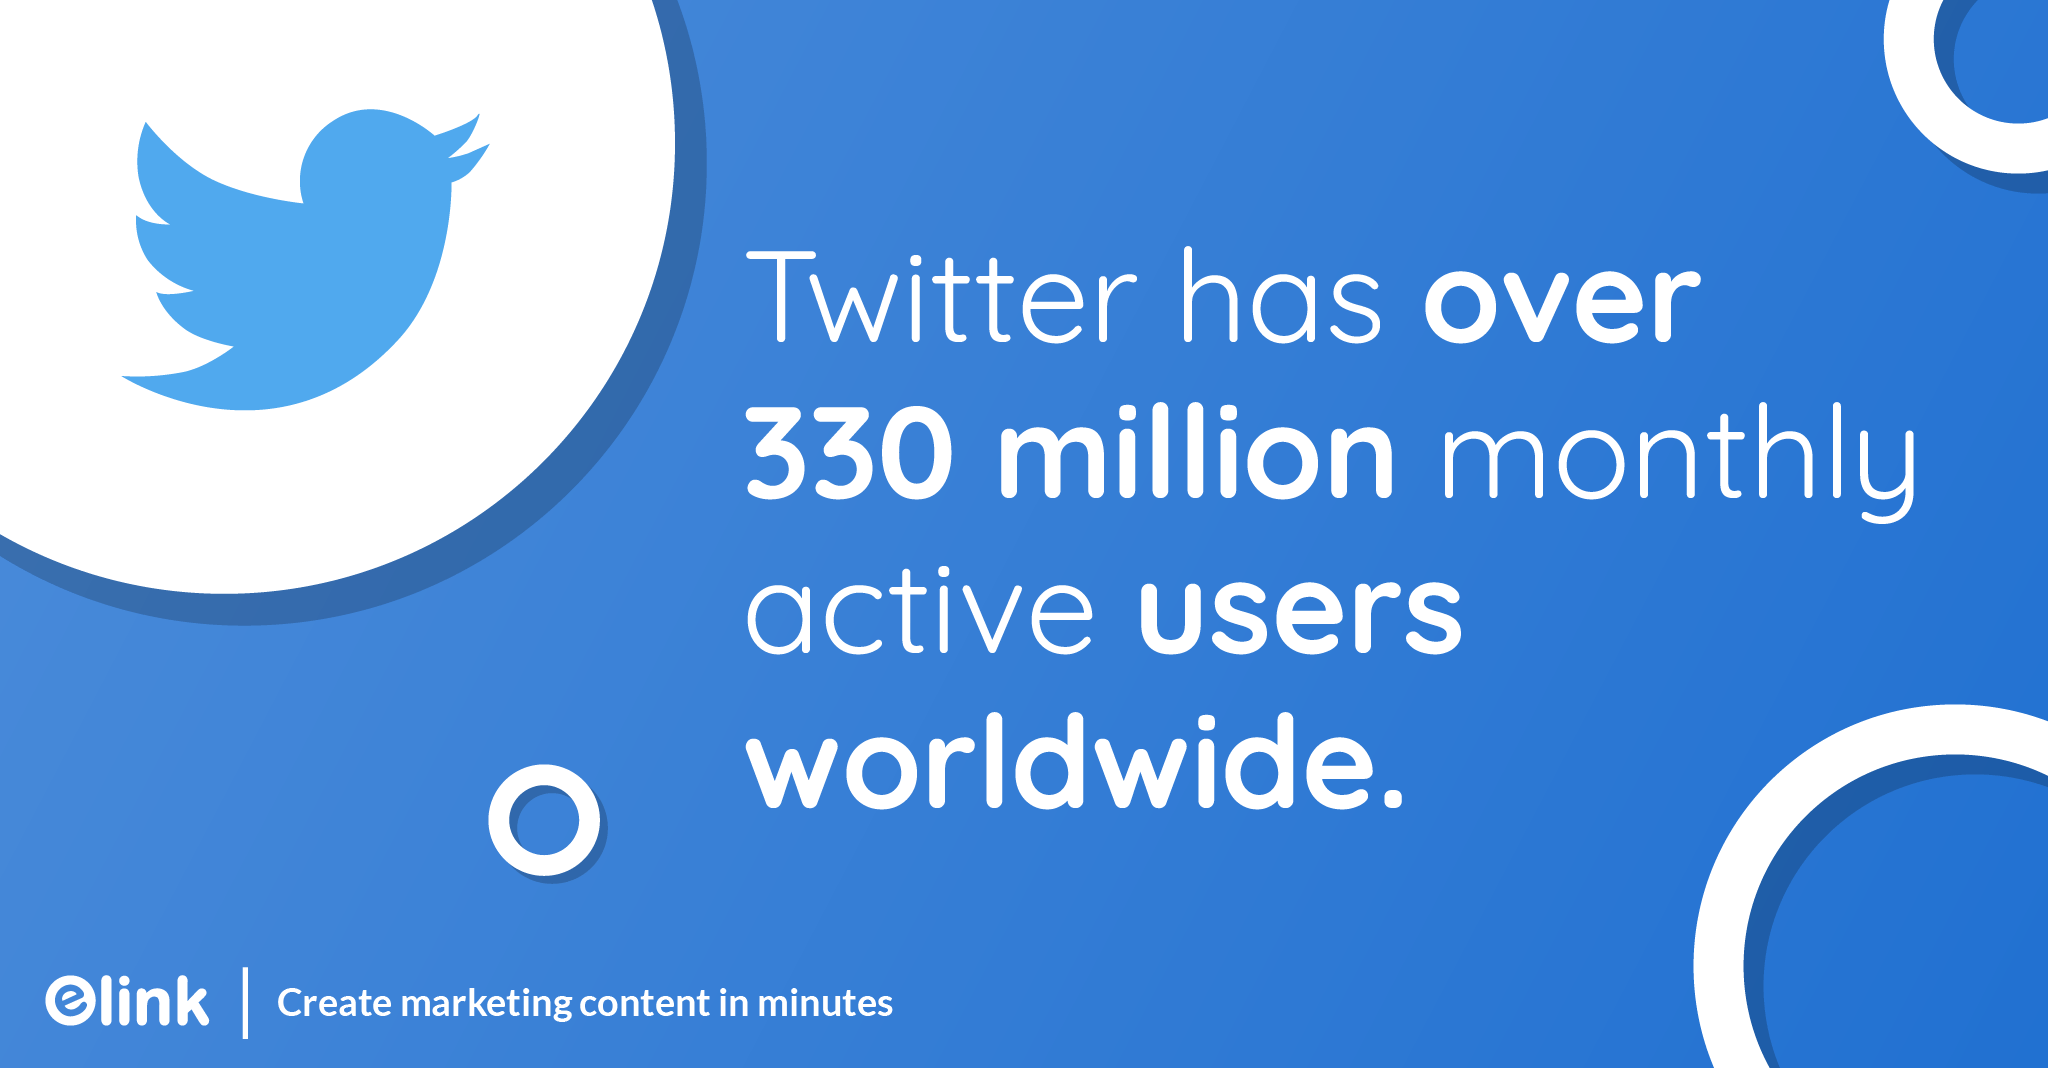 Twitter has over 330 million monthly active users worldwide.